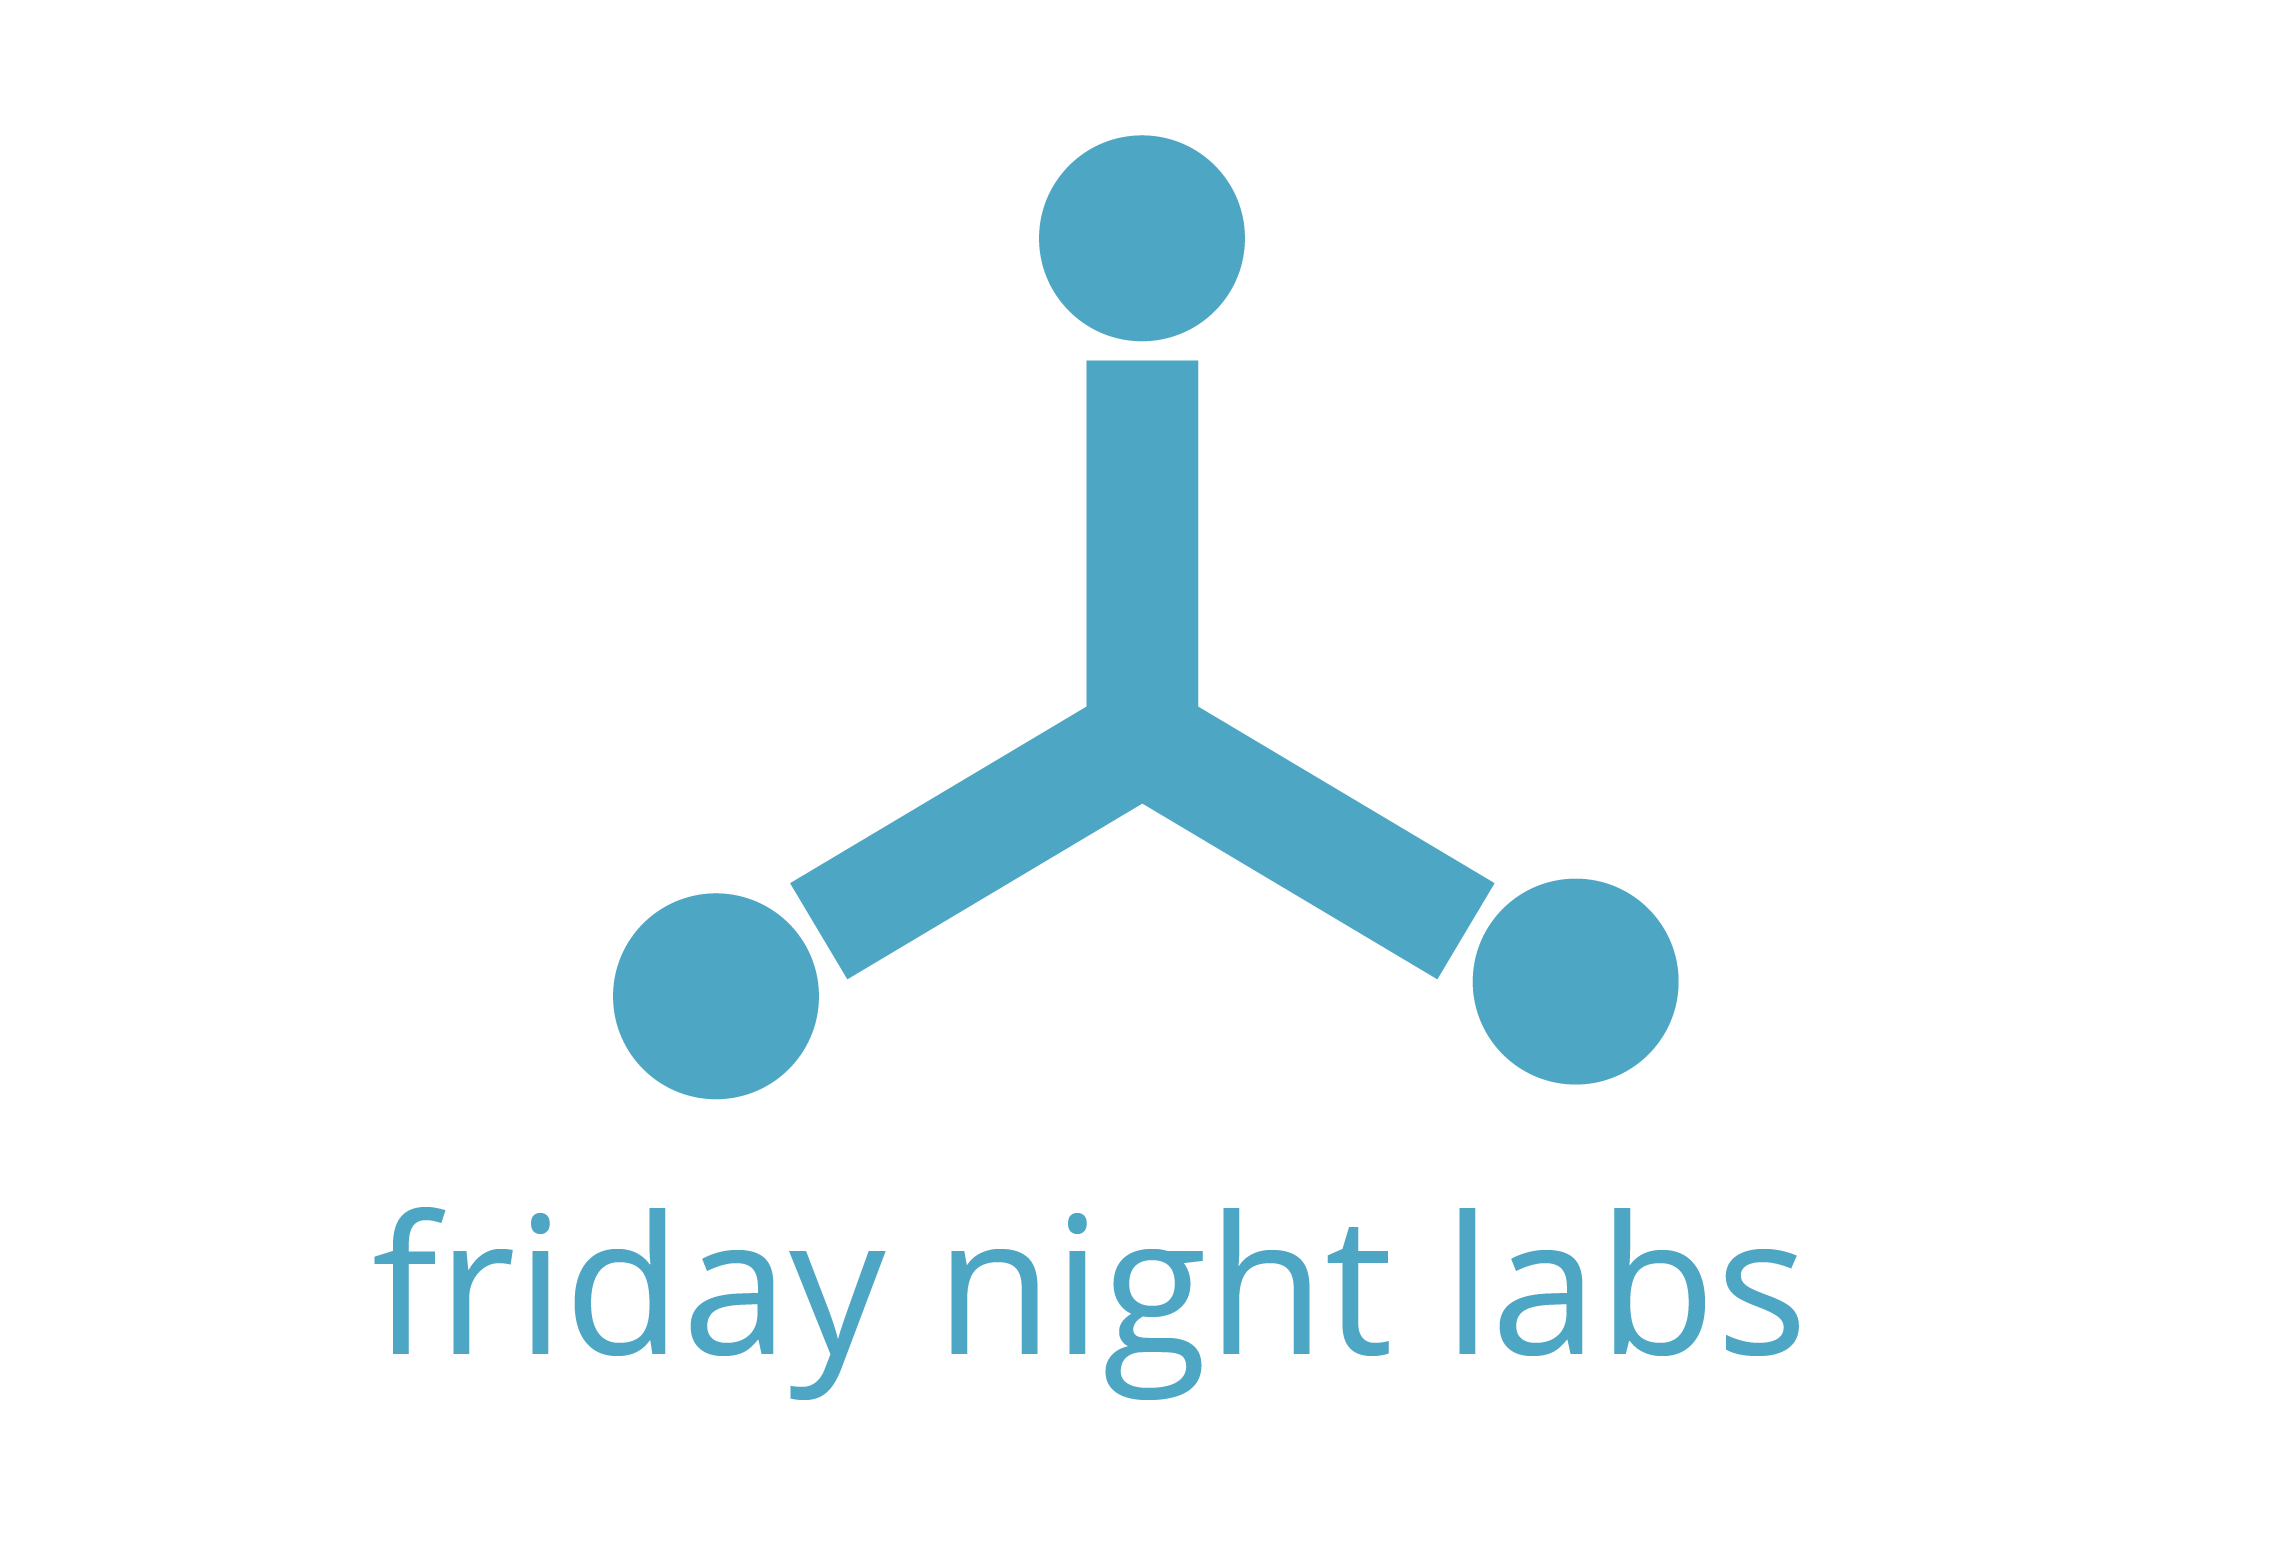 friday night labs logo